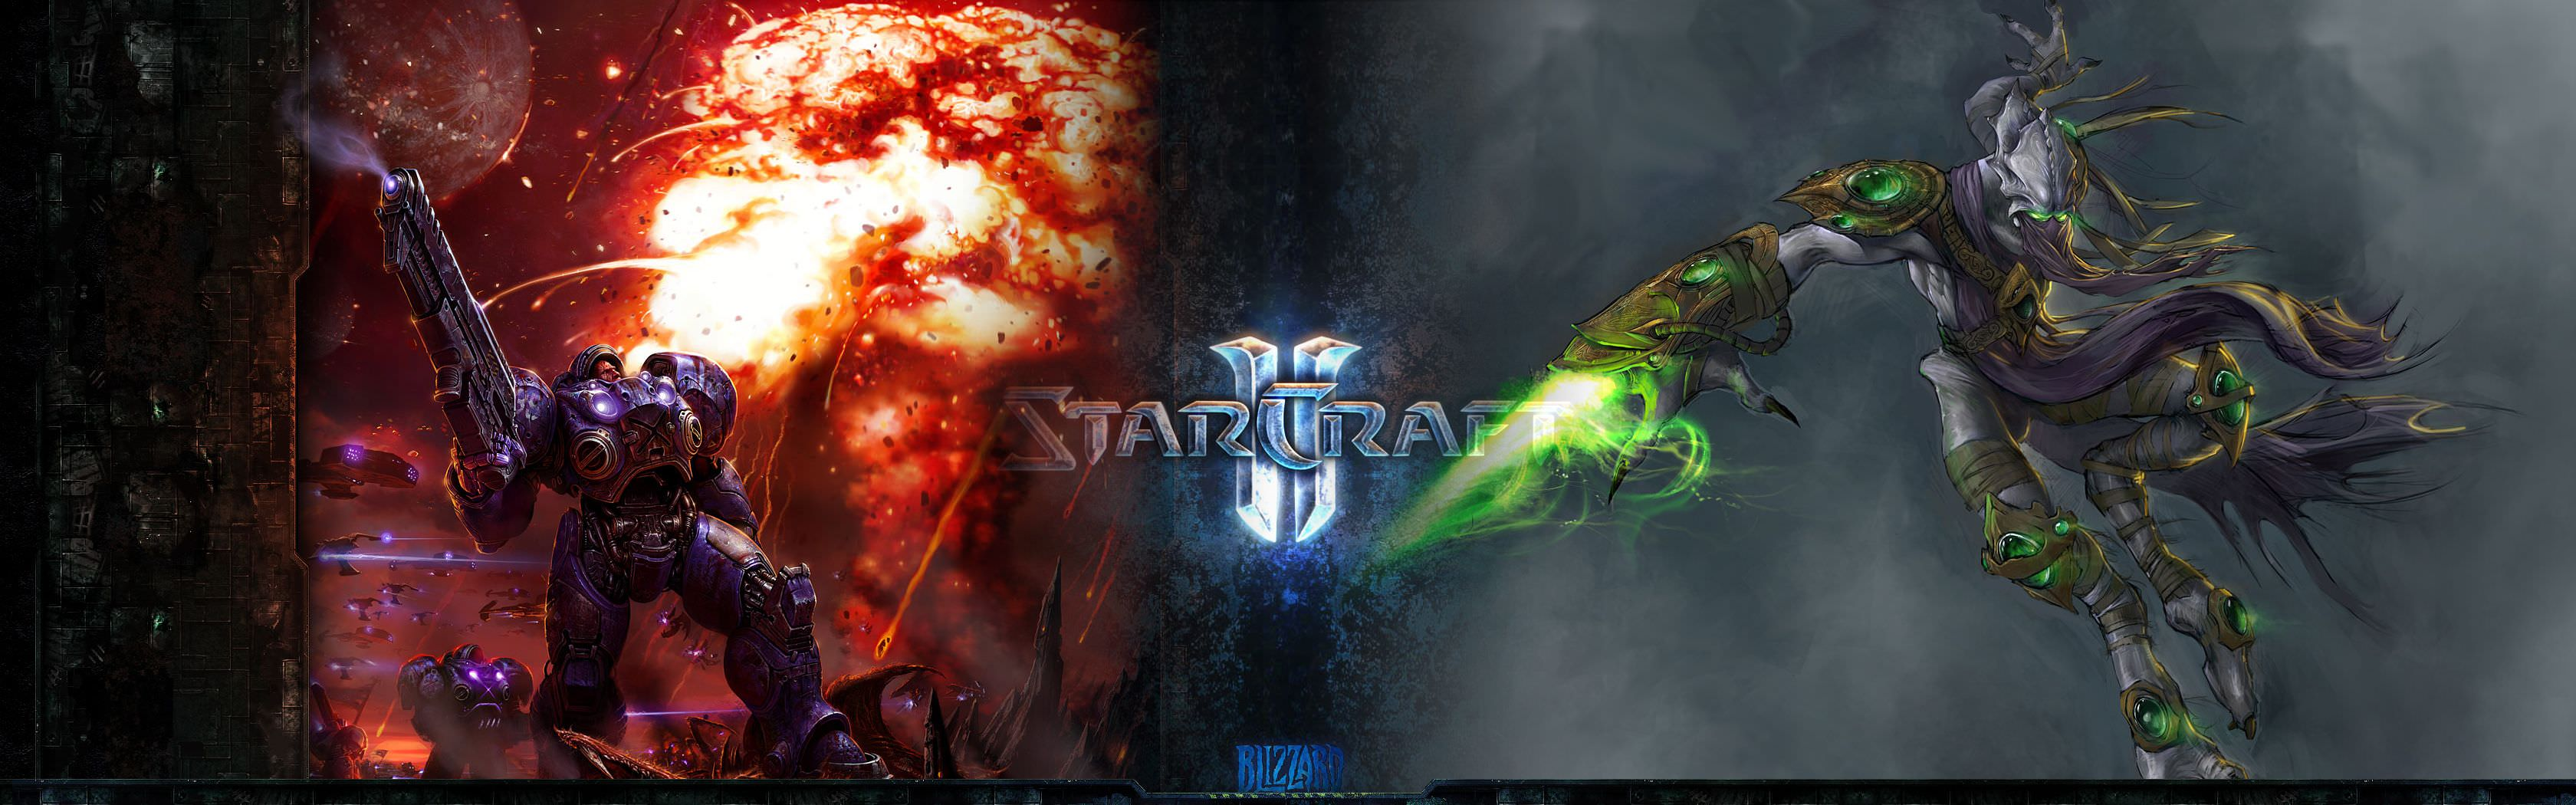 "1 Response to ""starcraft-dual-monitor-wallpaper"""